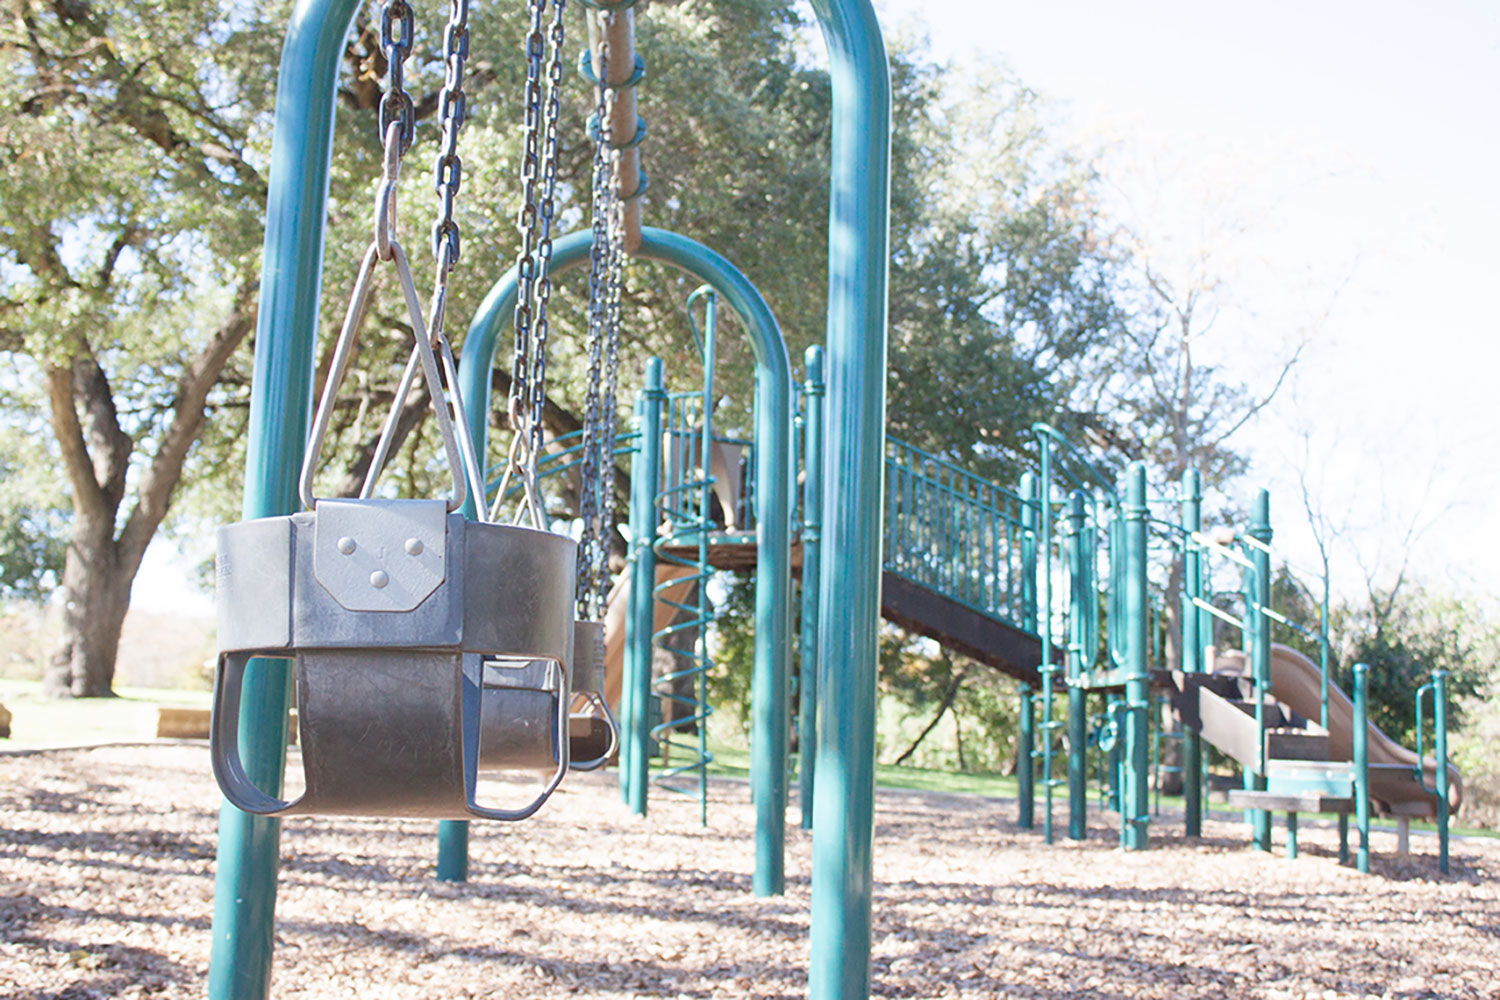 Swingset and playscape at Chautauqua Park in Georgetown, TX